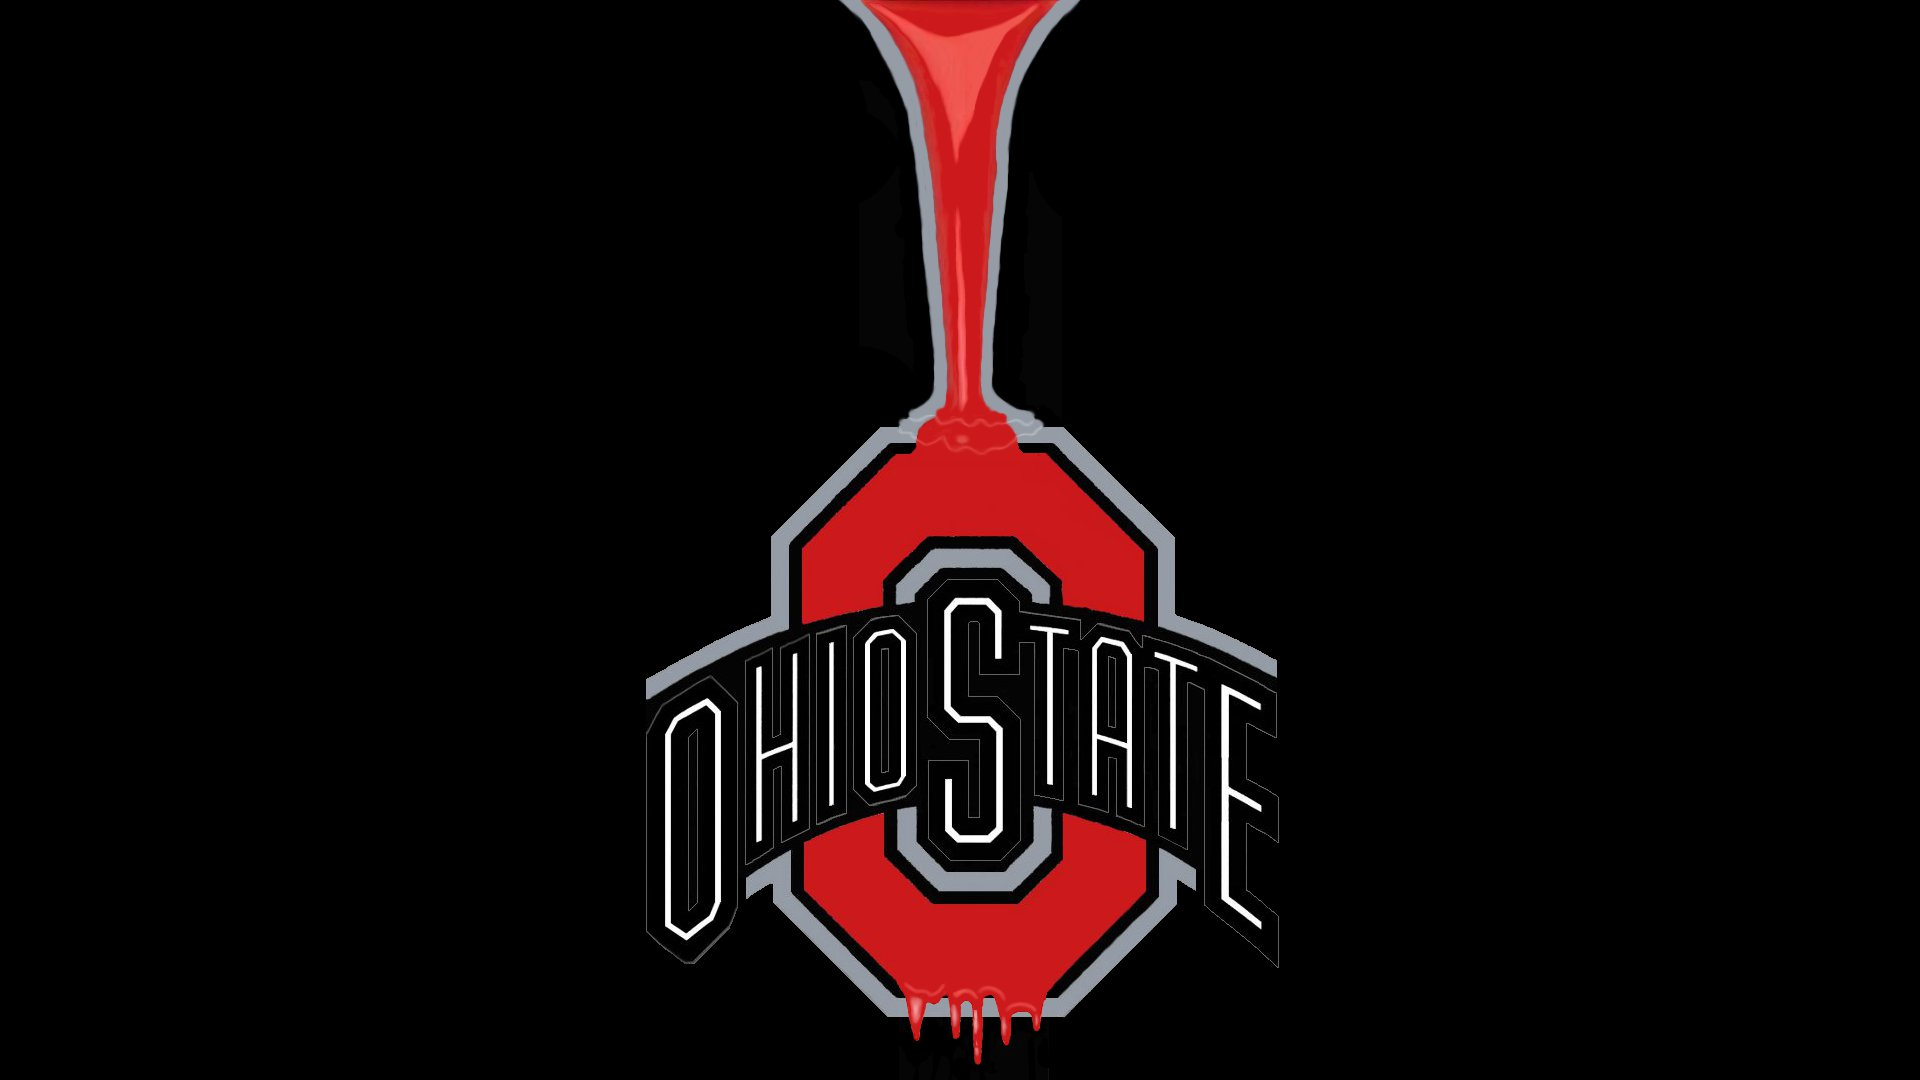 OSU Wallpaper 202   Ohio State Football Wallpaper 29072199 1920x1080